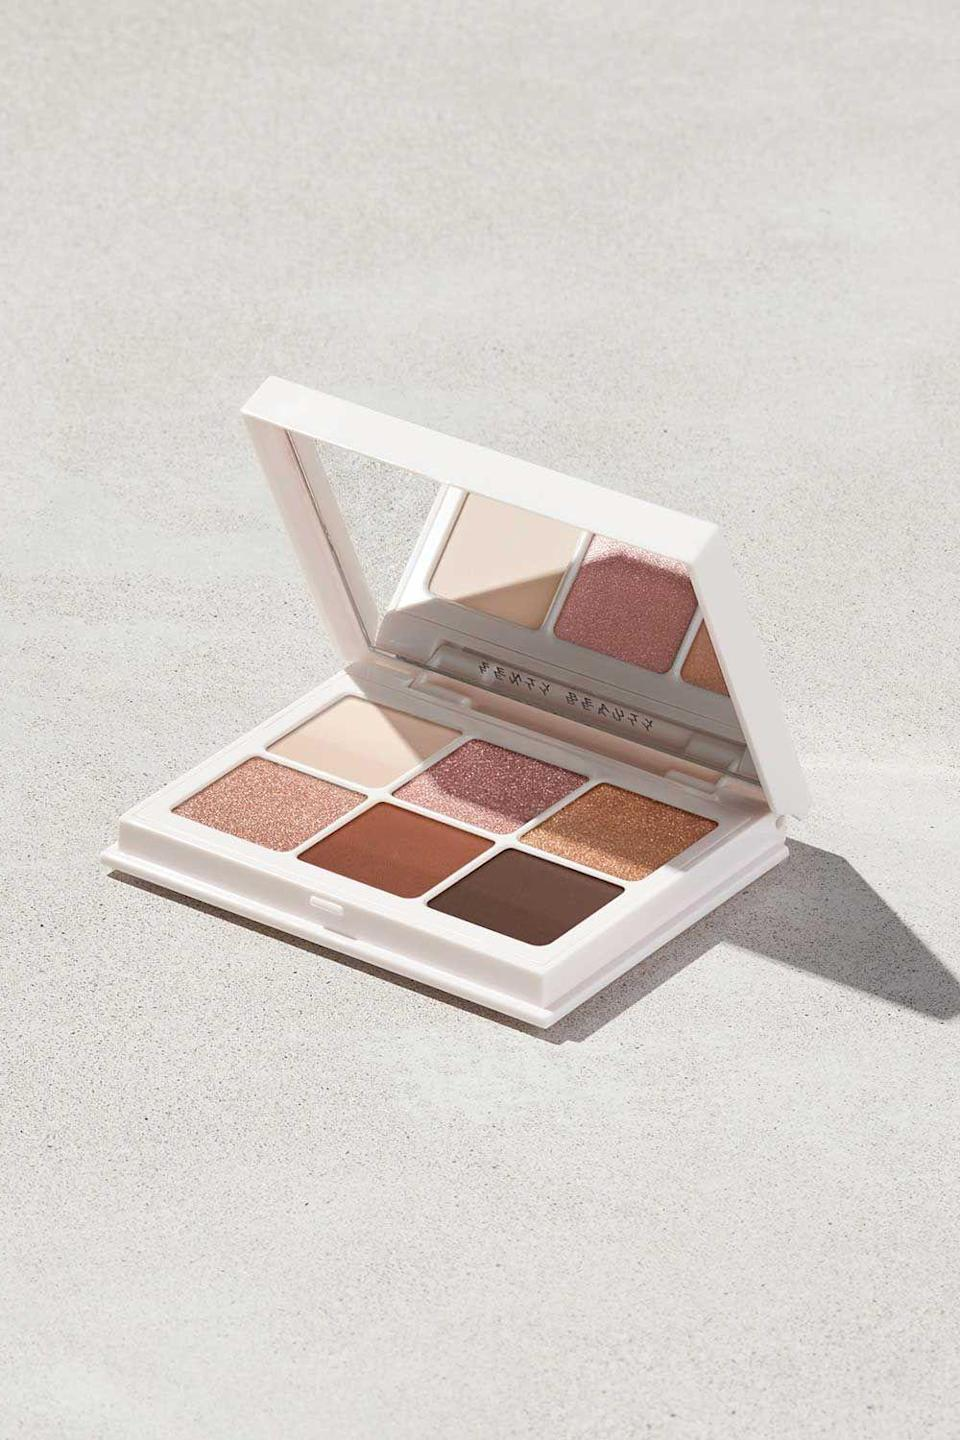 """<p><strong>Fenty Beauty</strong></p><p>fentybeauty.com</p><p><a href=""""https://go.redirectingat.com?id=74968X1596630&url=https%3A%2F%2Fwww.fentybeauty.com%2Fsnap-shadows-mix-and-match-eyeshadow-palette%2FFB70023.html%3Fdwvar_FB70023_color%3DFB9034%26cgid%3Dmakeup-eye&sref=https%3A%2F%2Fwww.seventeen.com%2Fbeauty%2Fg34398305%2Ffenty-beauty-sale-october-2020%2F"""" rel=""""nofollow noopener"""" target=""""_blank"""" data-ylk=""""slk:SHOP IT"""" class=""""link rapid-noclick-resp"""">SHOP IT </a></p><p><strong><del>$25</del> $16.87 (33% off)</strong></p><p>Why not spend this time inside perfecting your smokey eye? With six gorgeous shades to choose from, this eyeshadow palette gives you plenty of options to play with. </p>"""